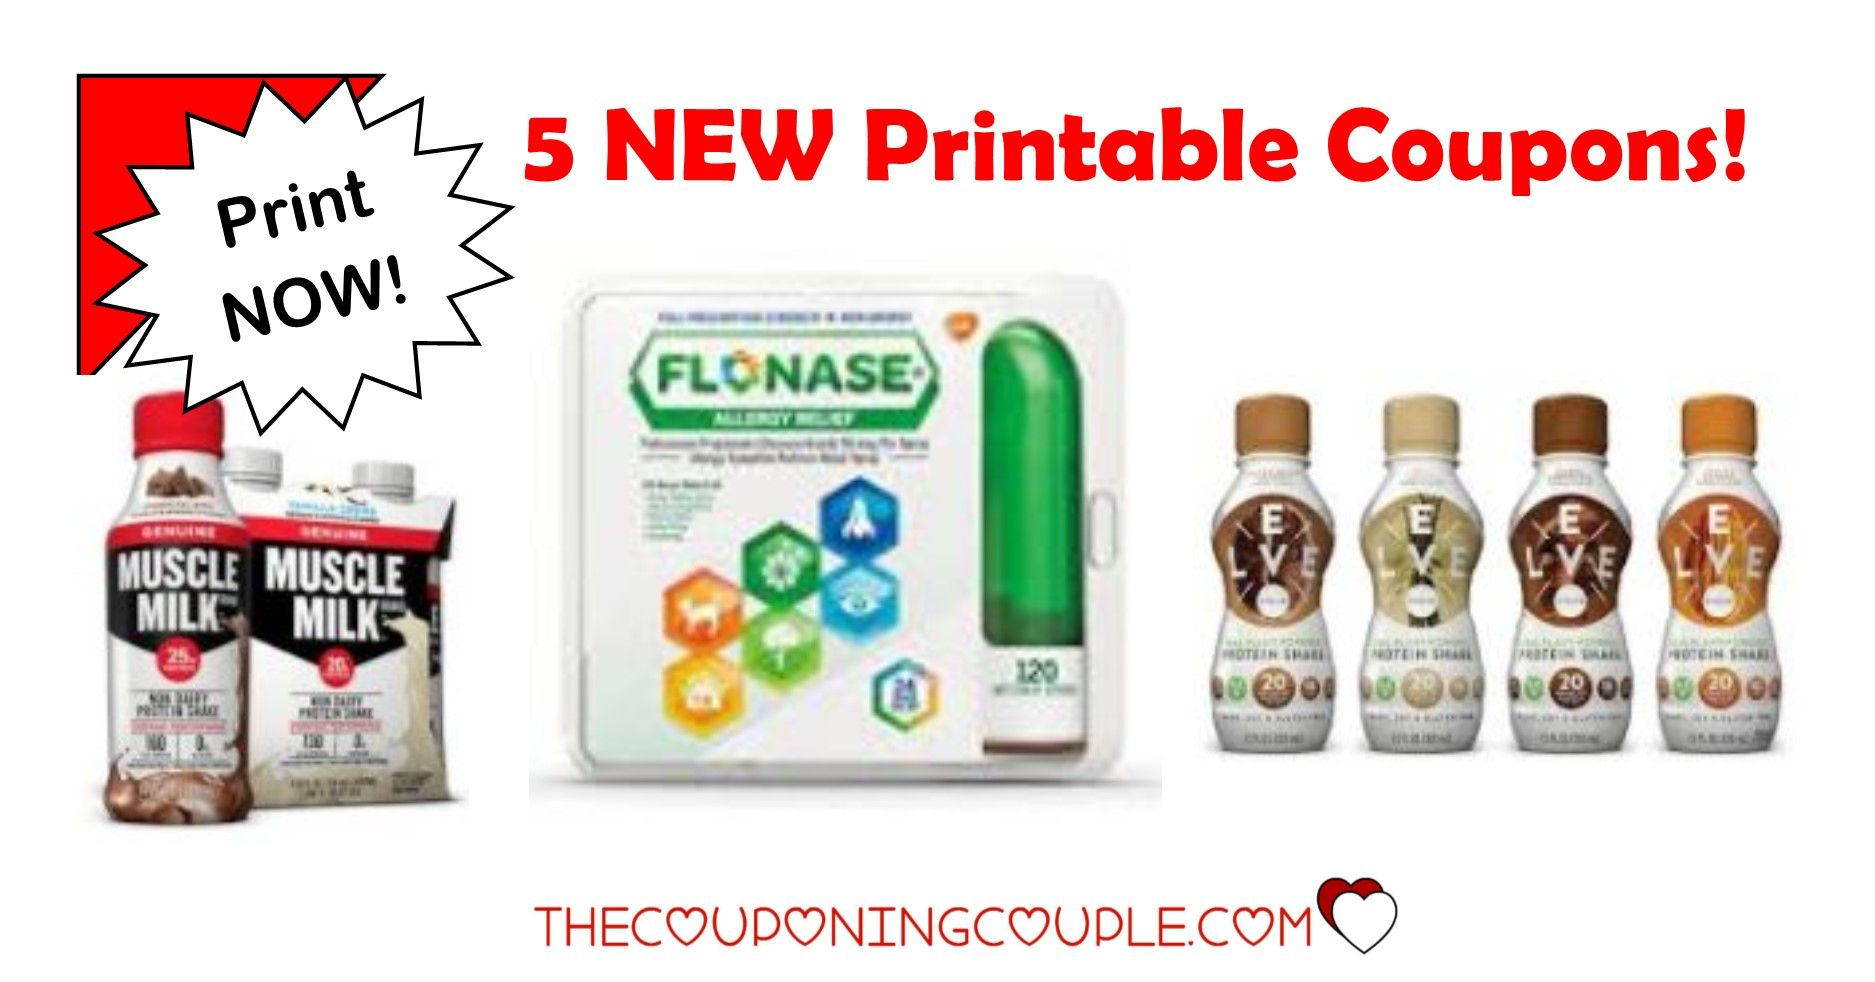 5 new printable coupons 10 in savings print now